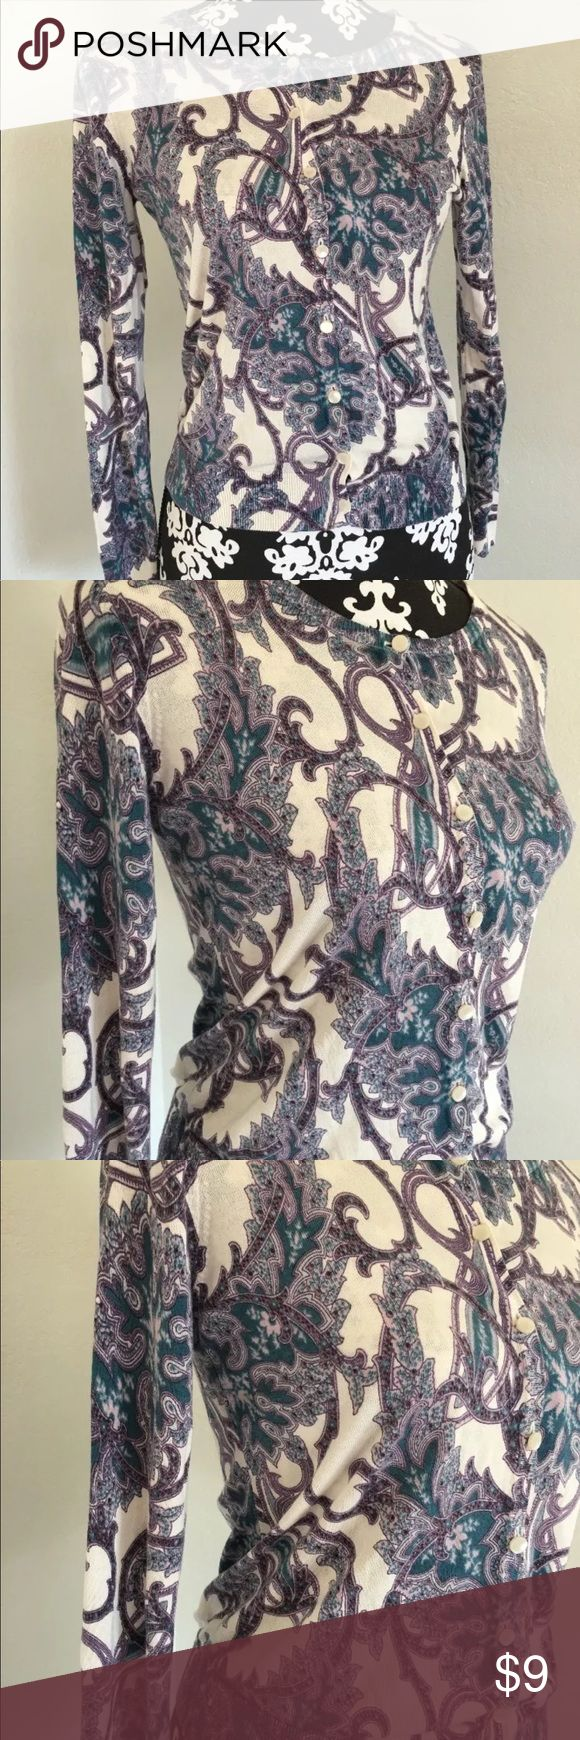 """Talbots Petite Size S white purple cardigan Gorgeous size smaller petite cardigan in amazing condition  Length 22""""  Armpit to armpit 18"""" Talbots Sweaters Cardigans"""